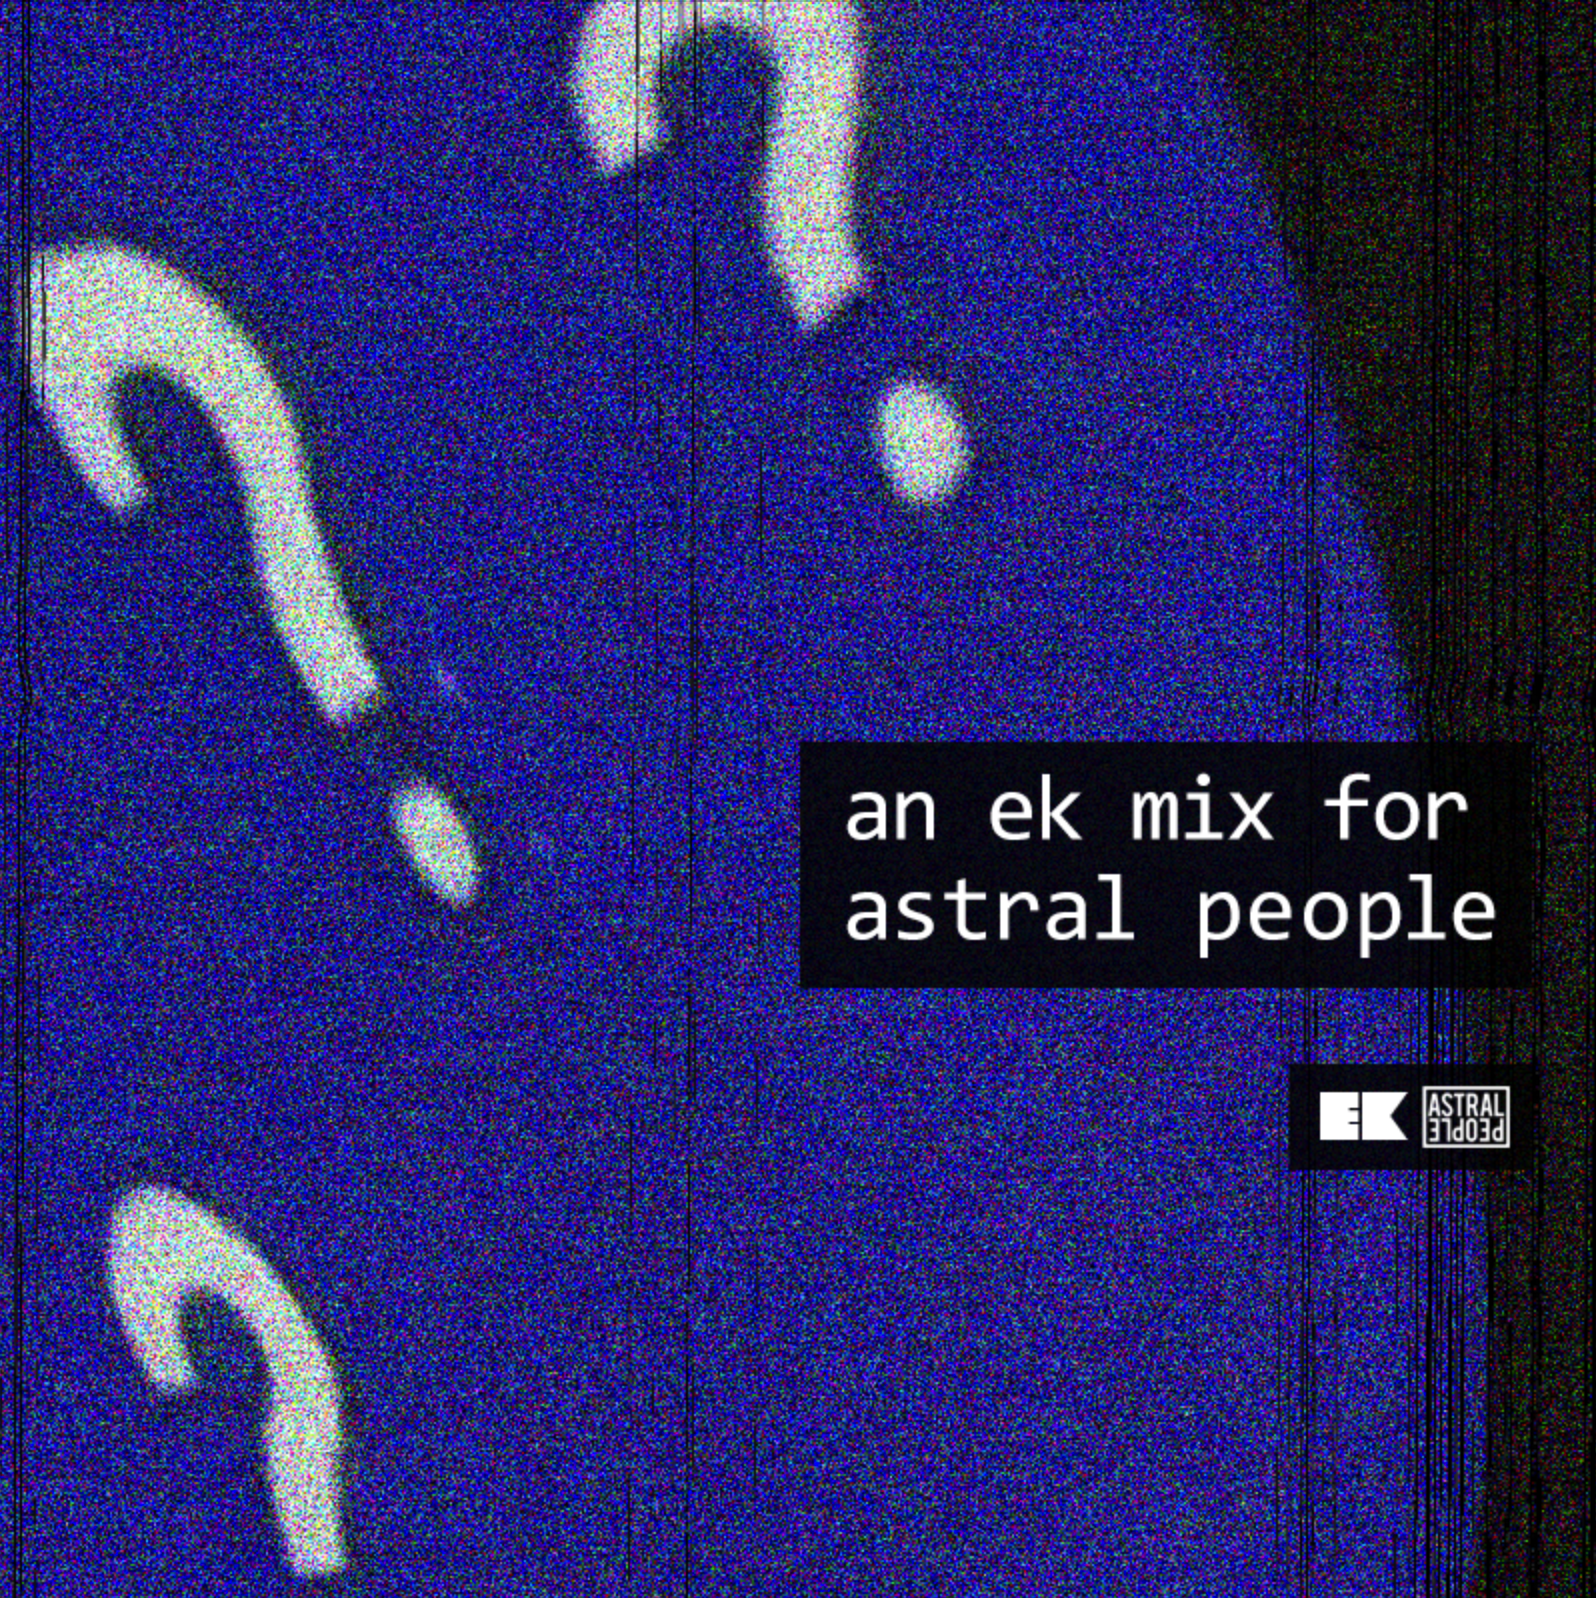 ek for astral people.png